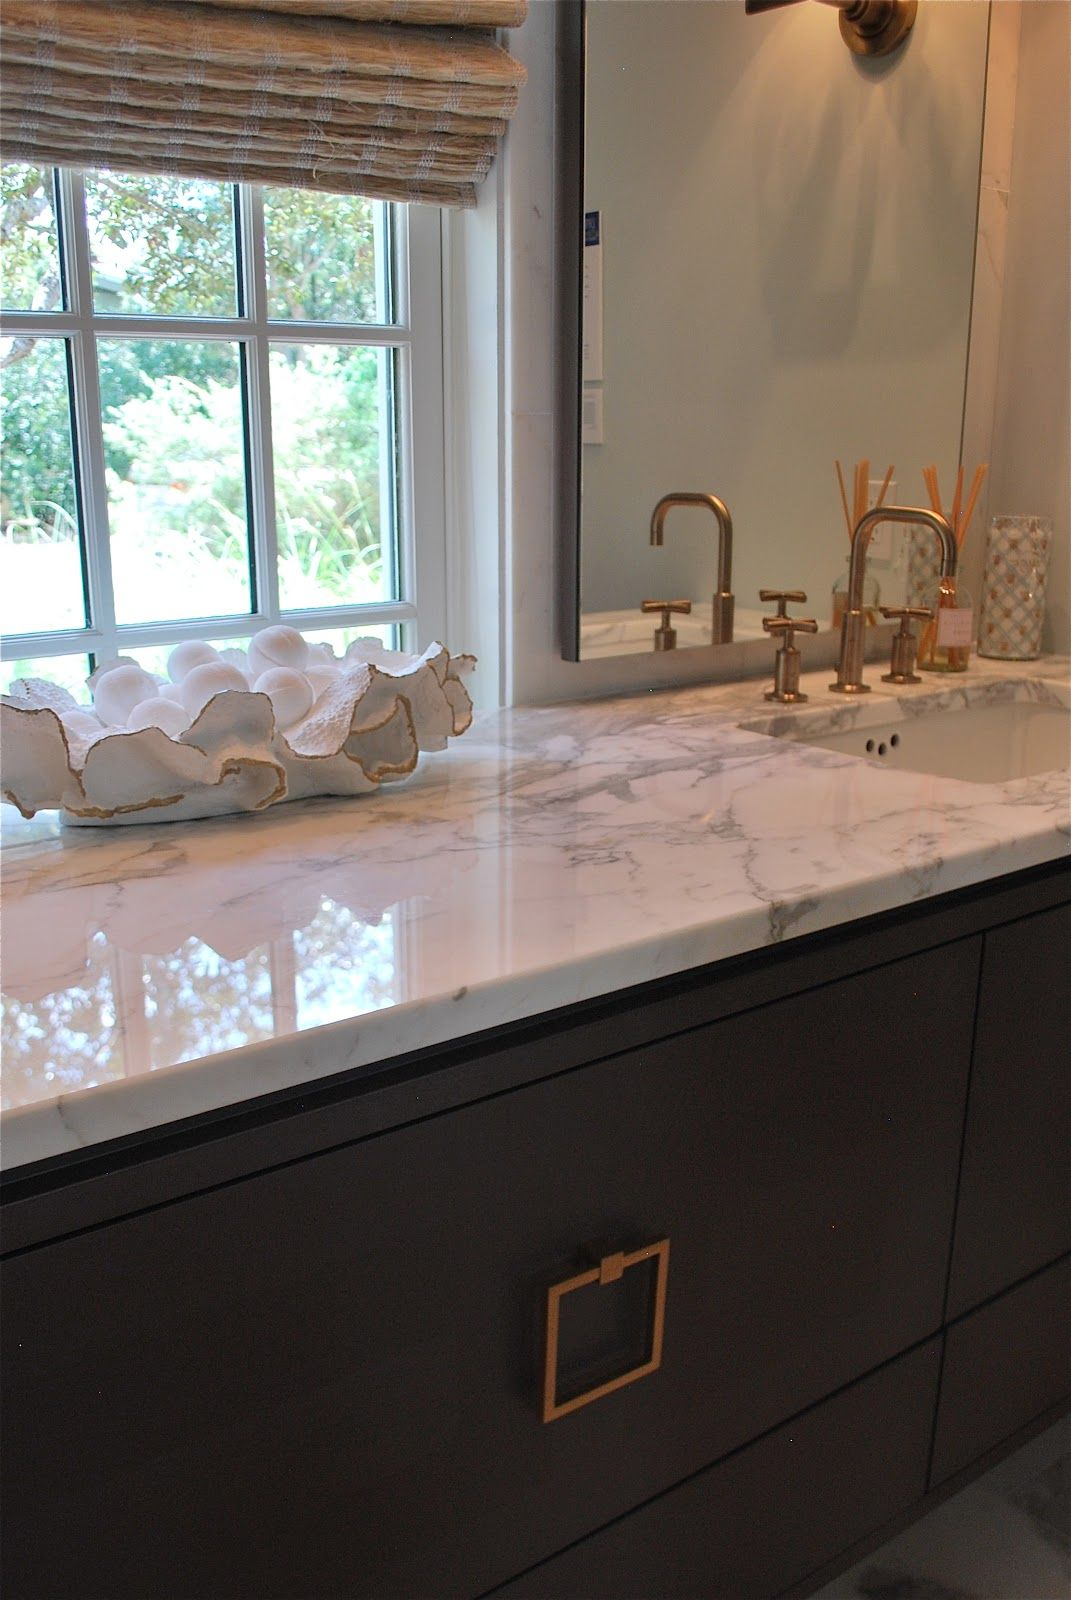 VREELAND ROAD The Ultimate Beach House Home Tourlove The Matte - Matte gold bathroom fixtures